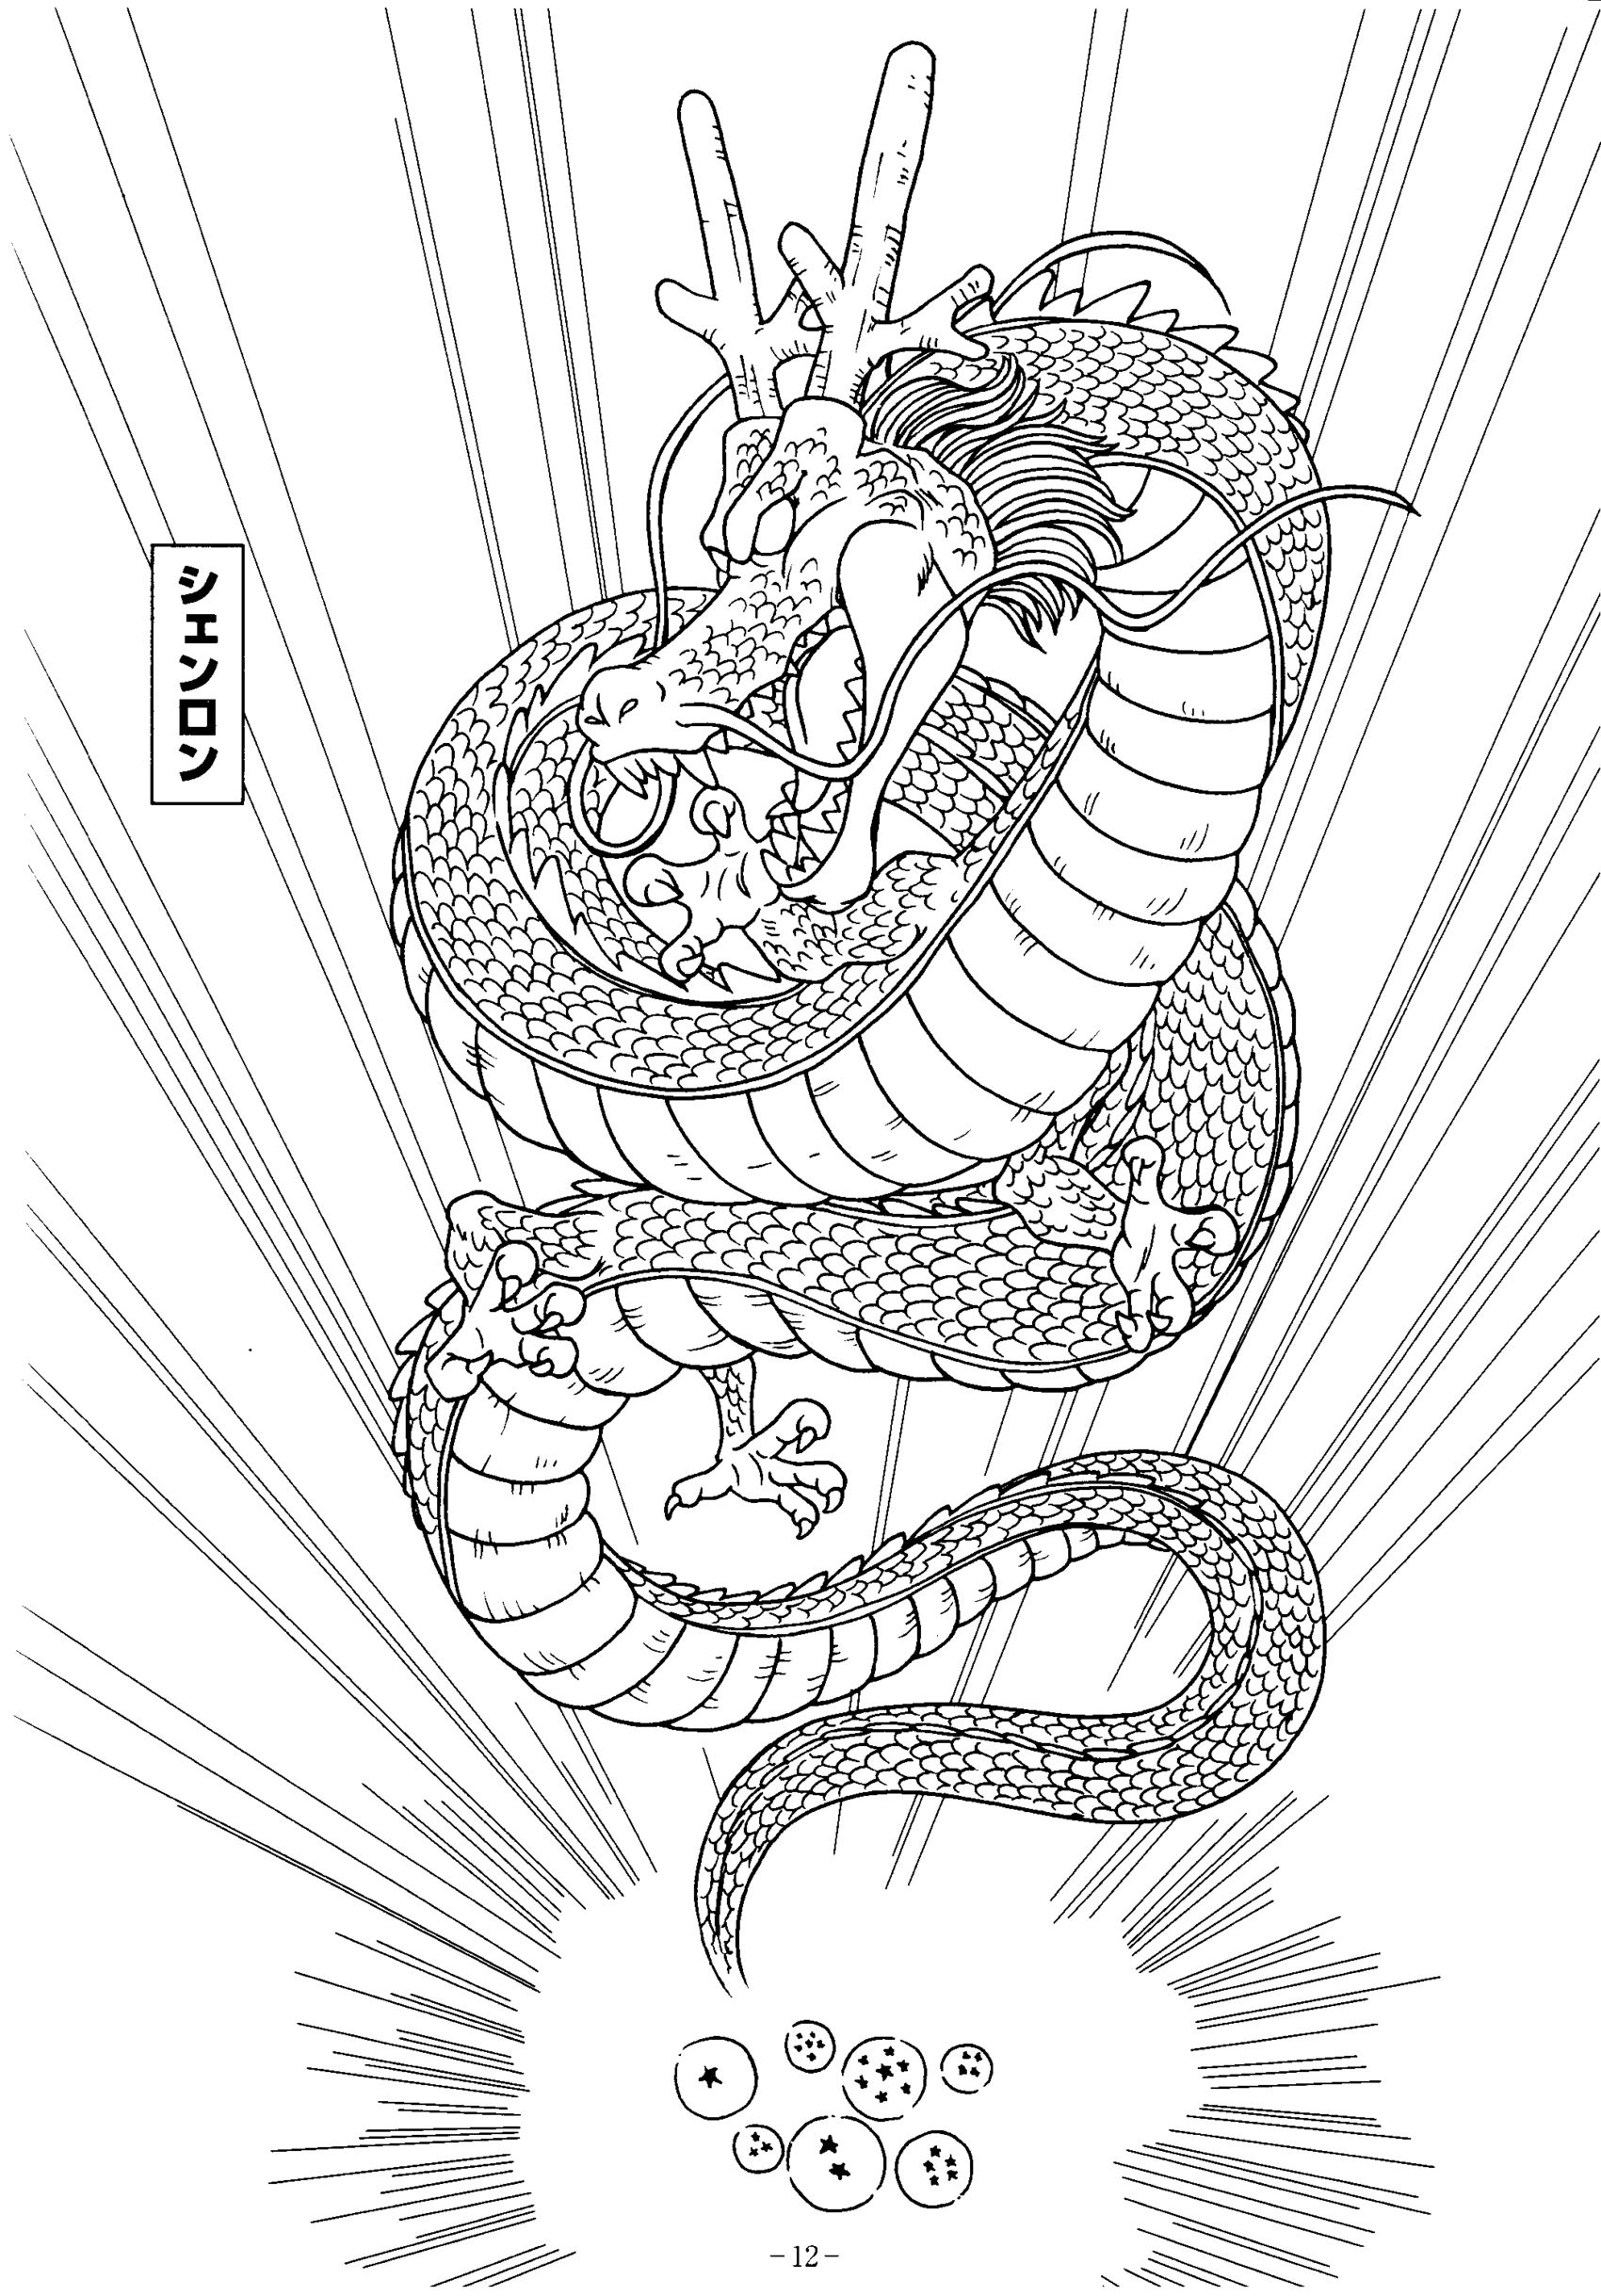 Kids-n-fun coloring pages dragon ball z